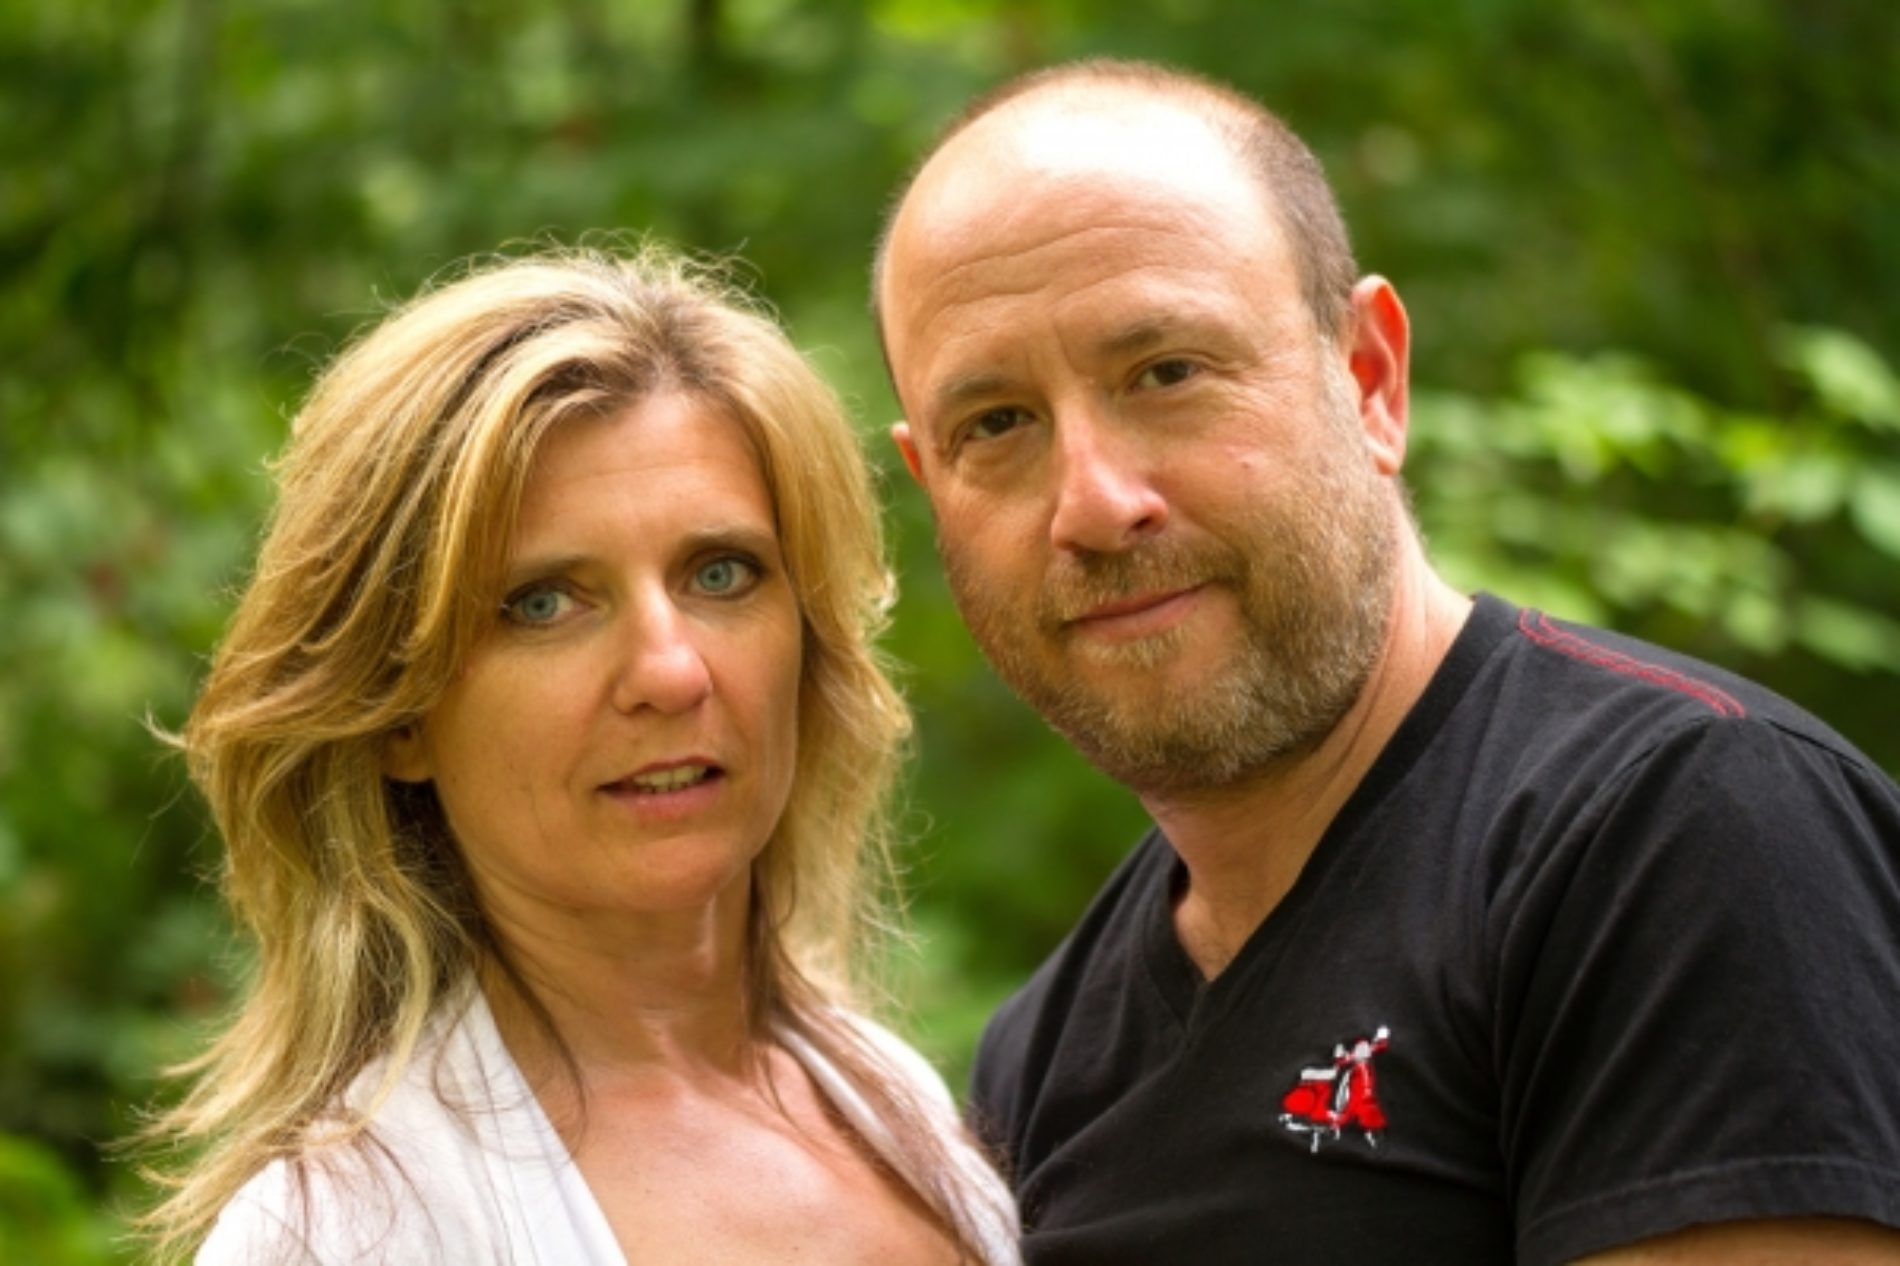 Wife Discovers Husband's Bisexuality And Reacts In Way That May Surprise You